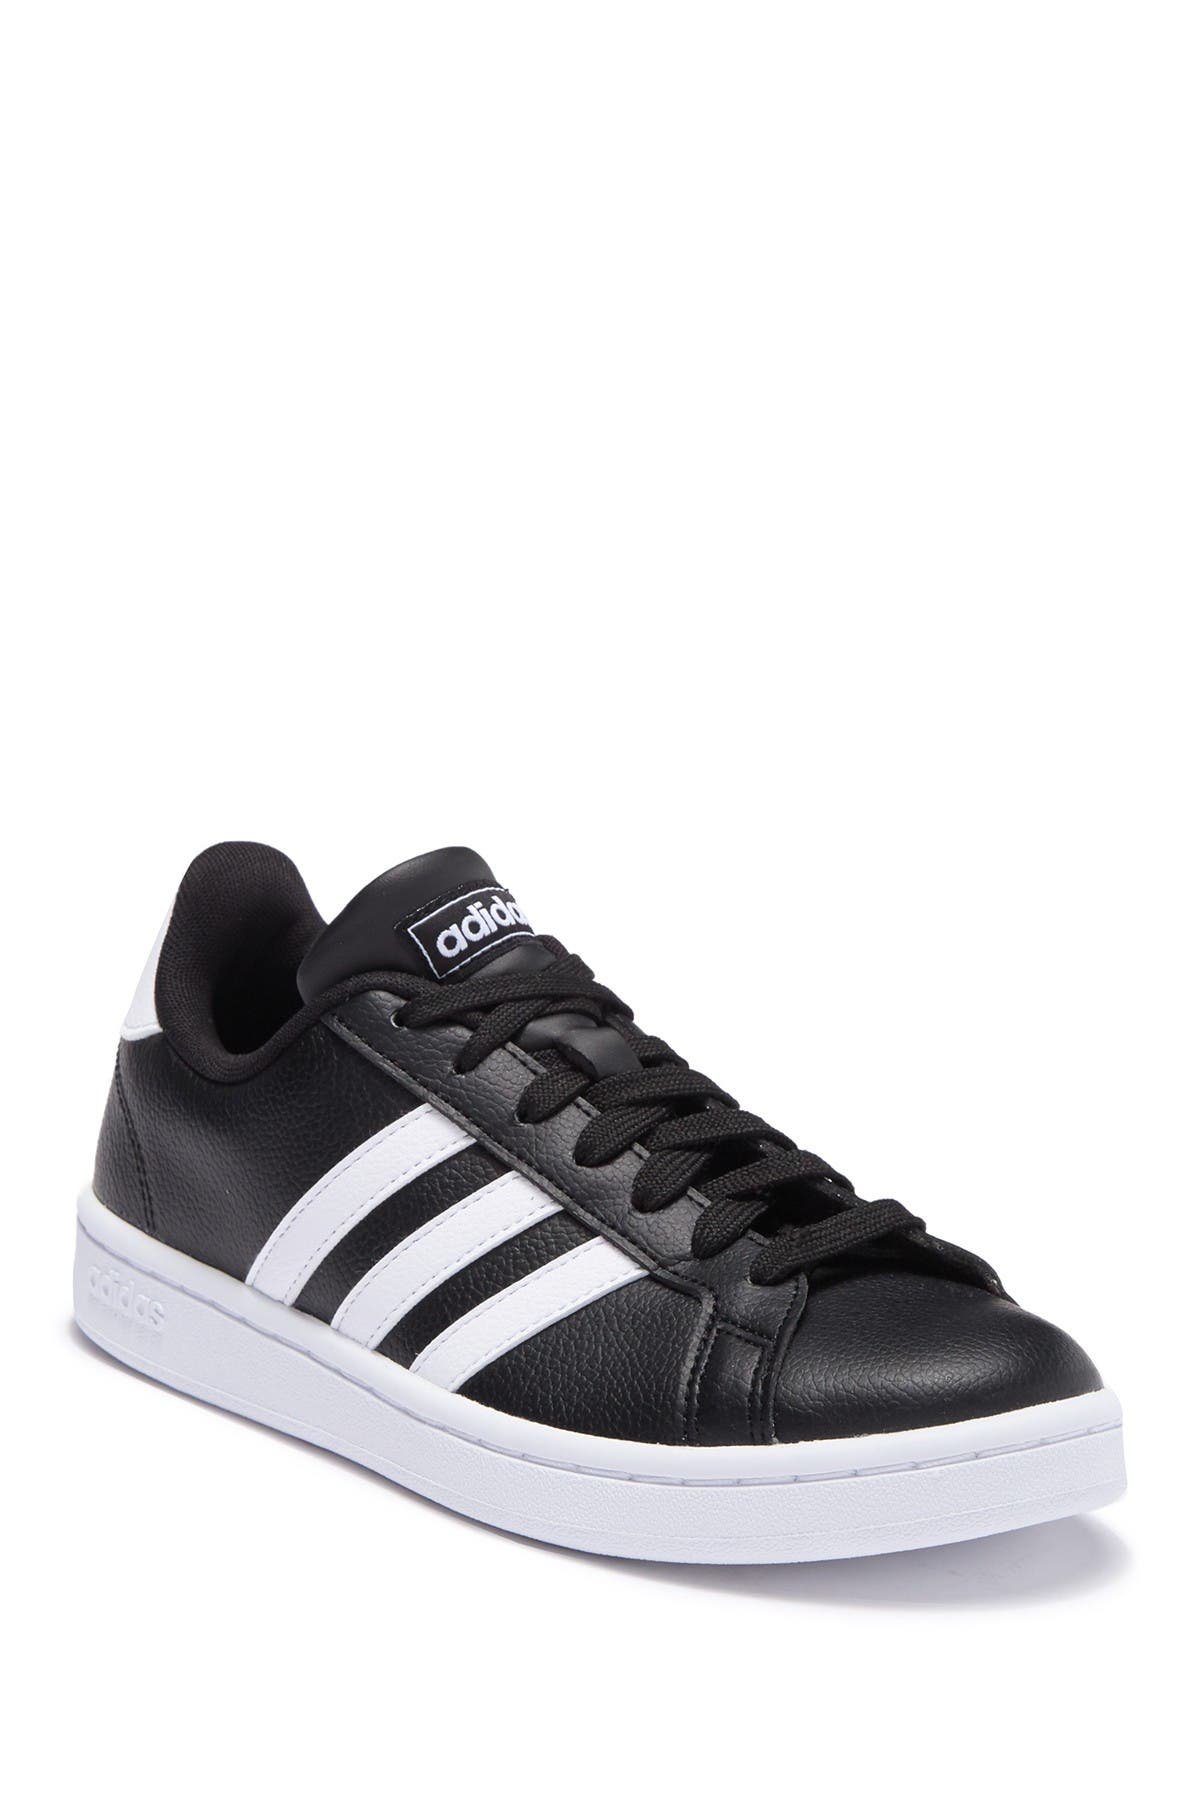 adidas | Grand Court Leather Sneaker